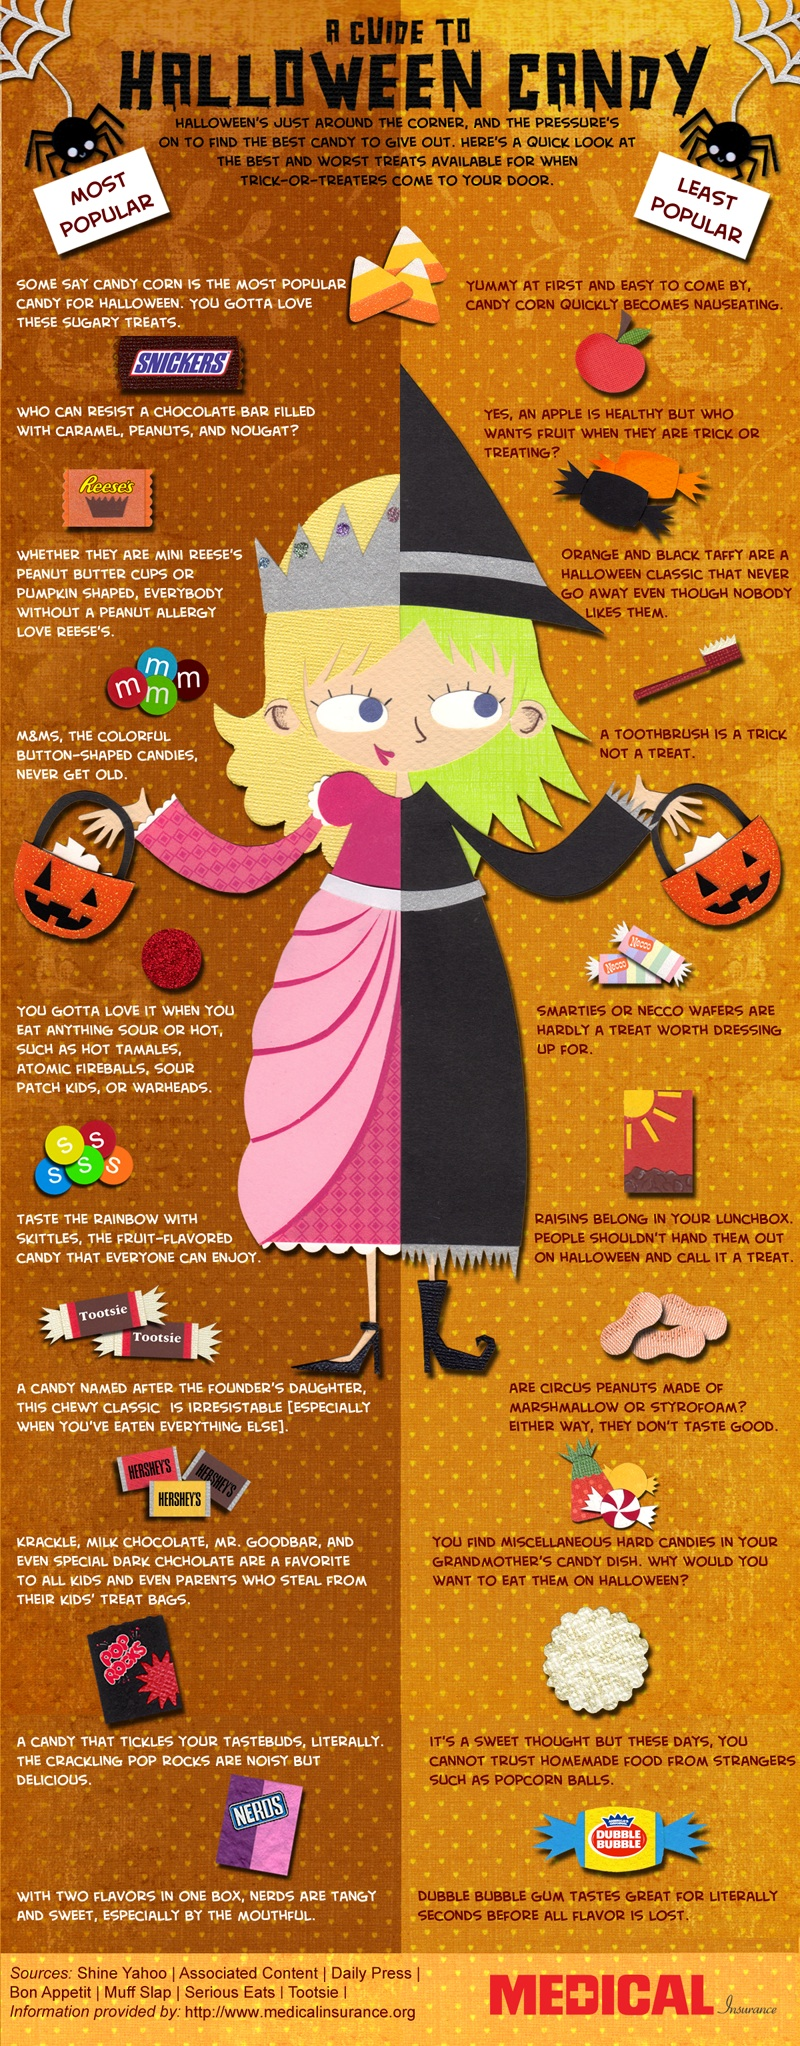 Halloween Candy Popularity